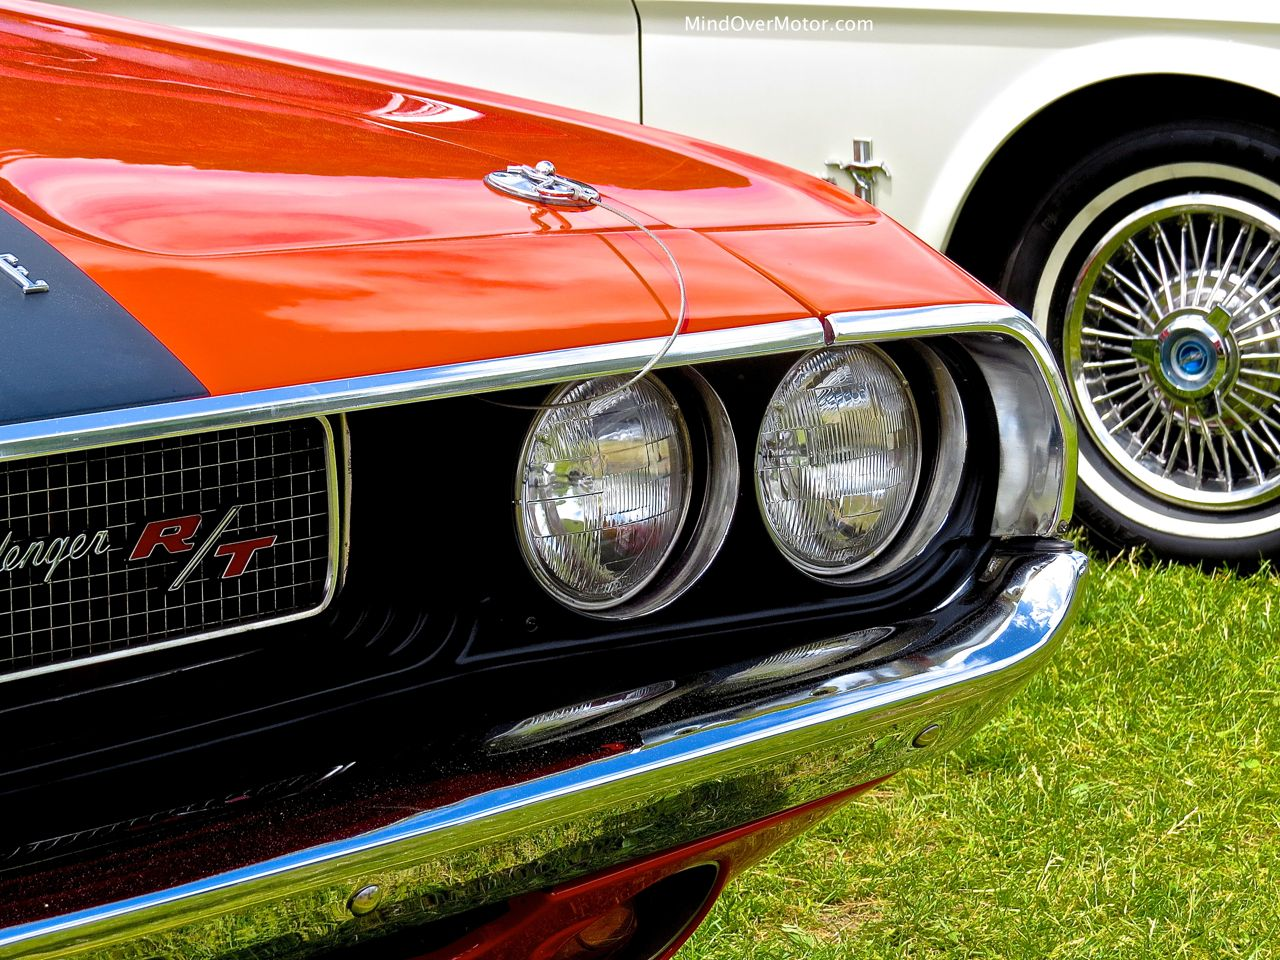 1970 Dodge Challenger R:T Convertible Headlights